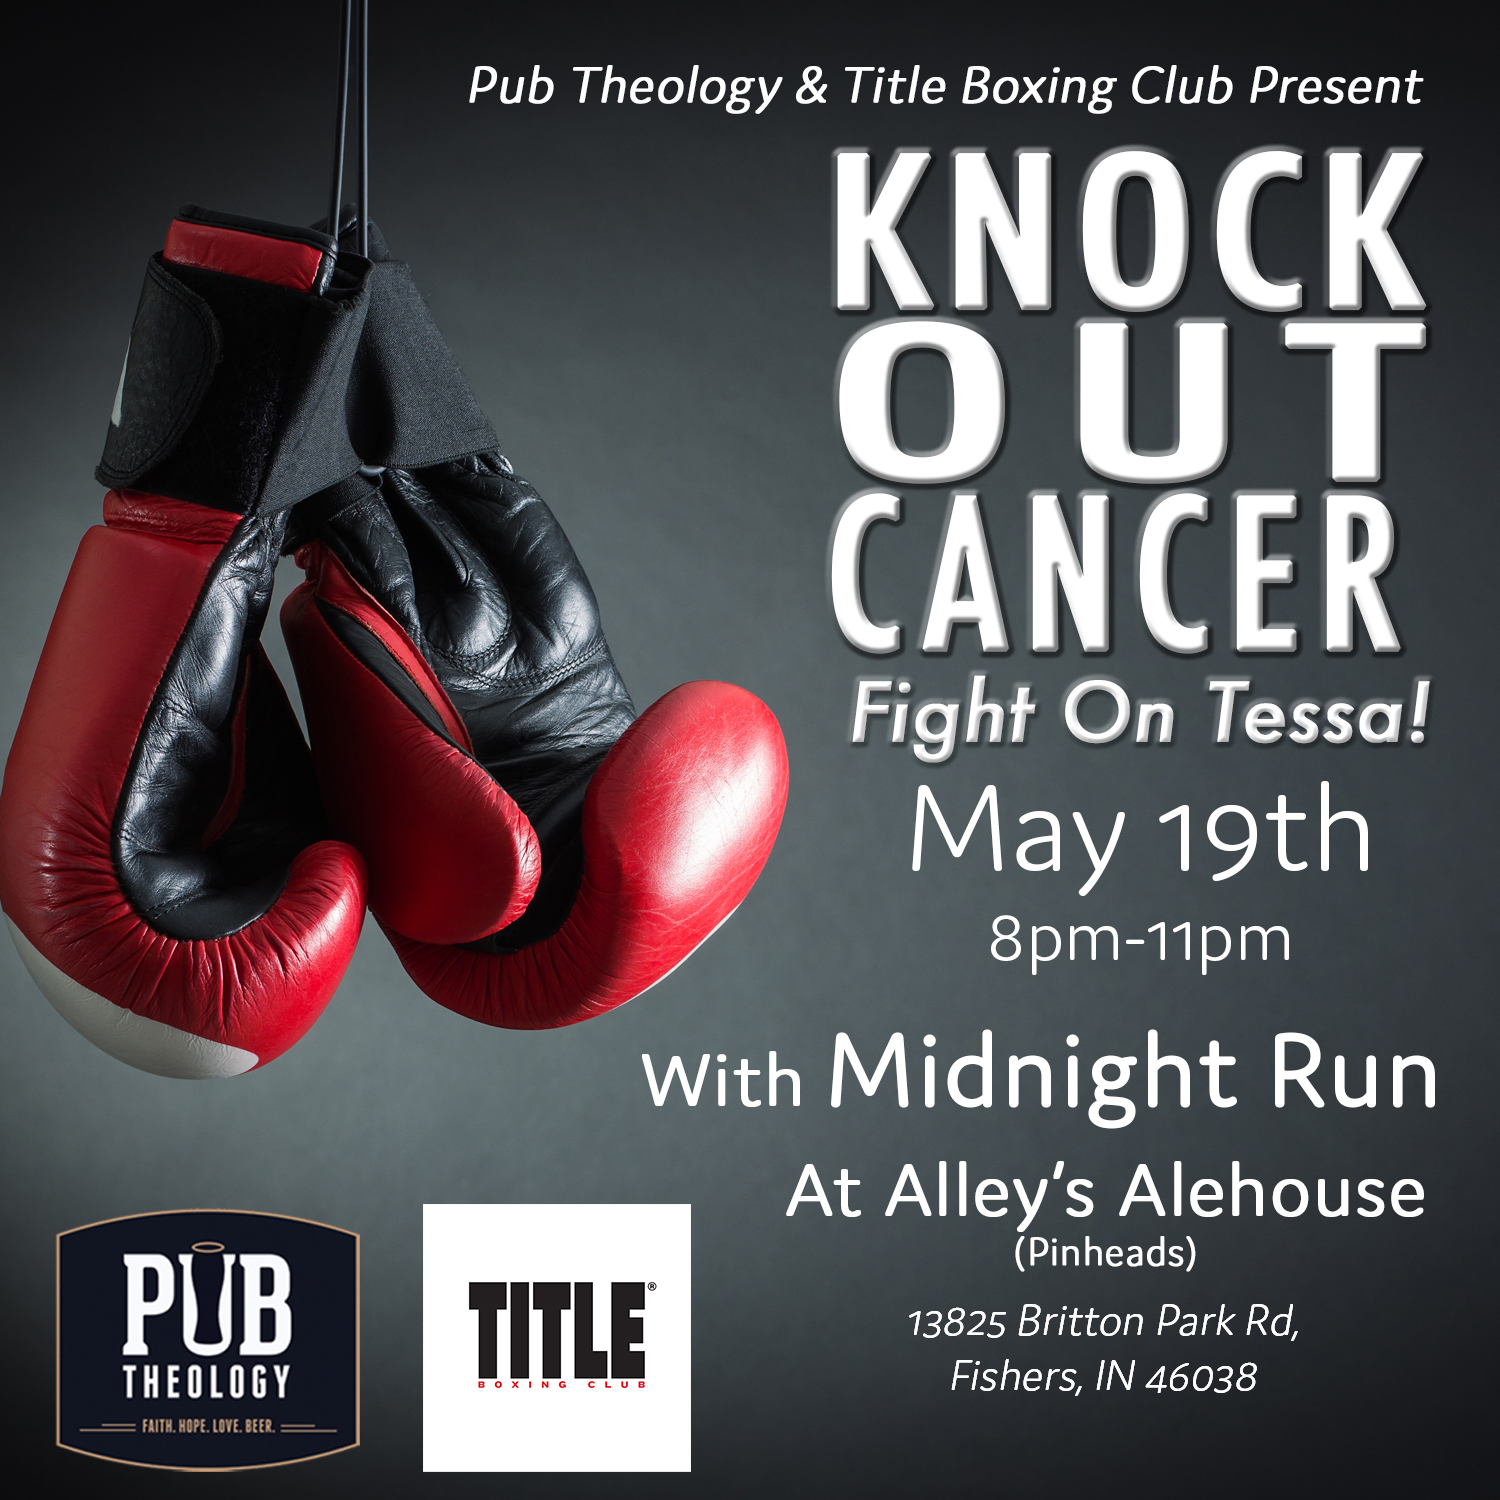 Knock Out Cancer